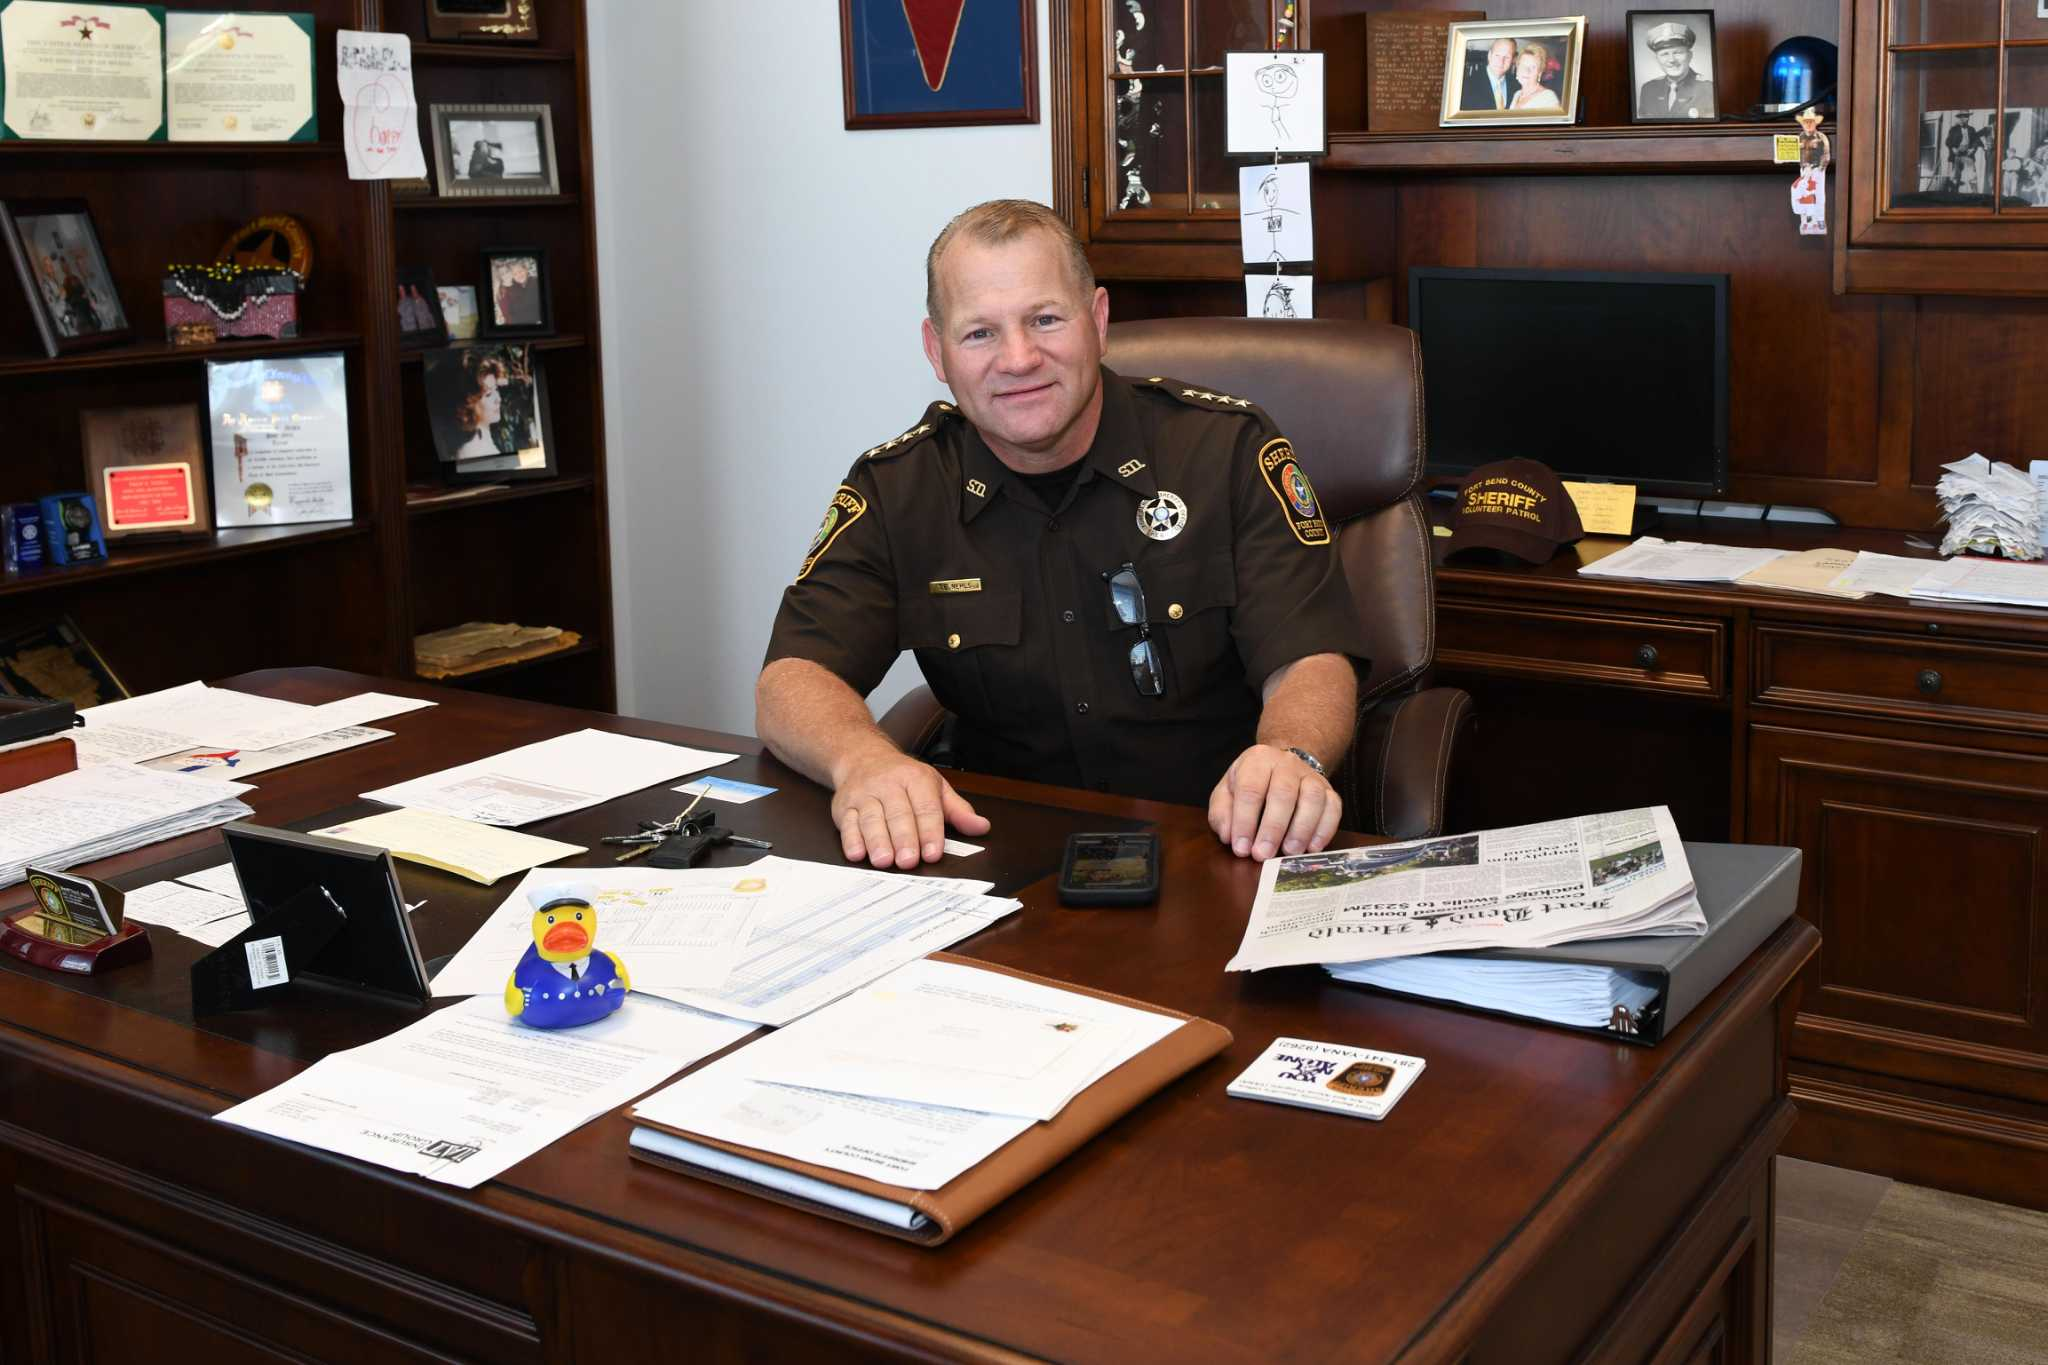 Fort Bend County Sheriff Nehls announces bid for Congress